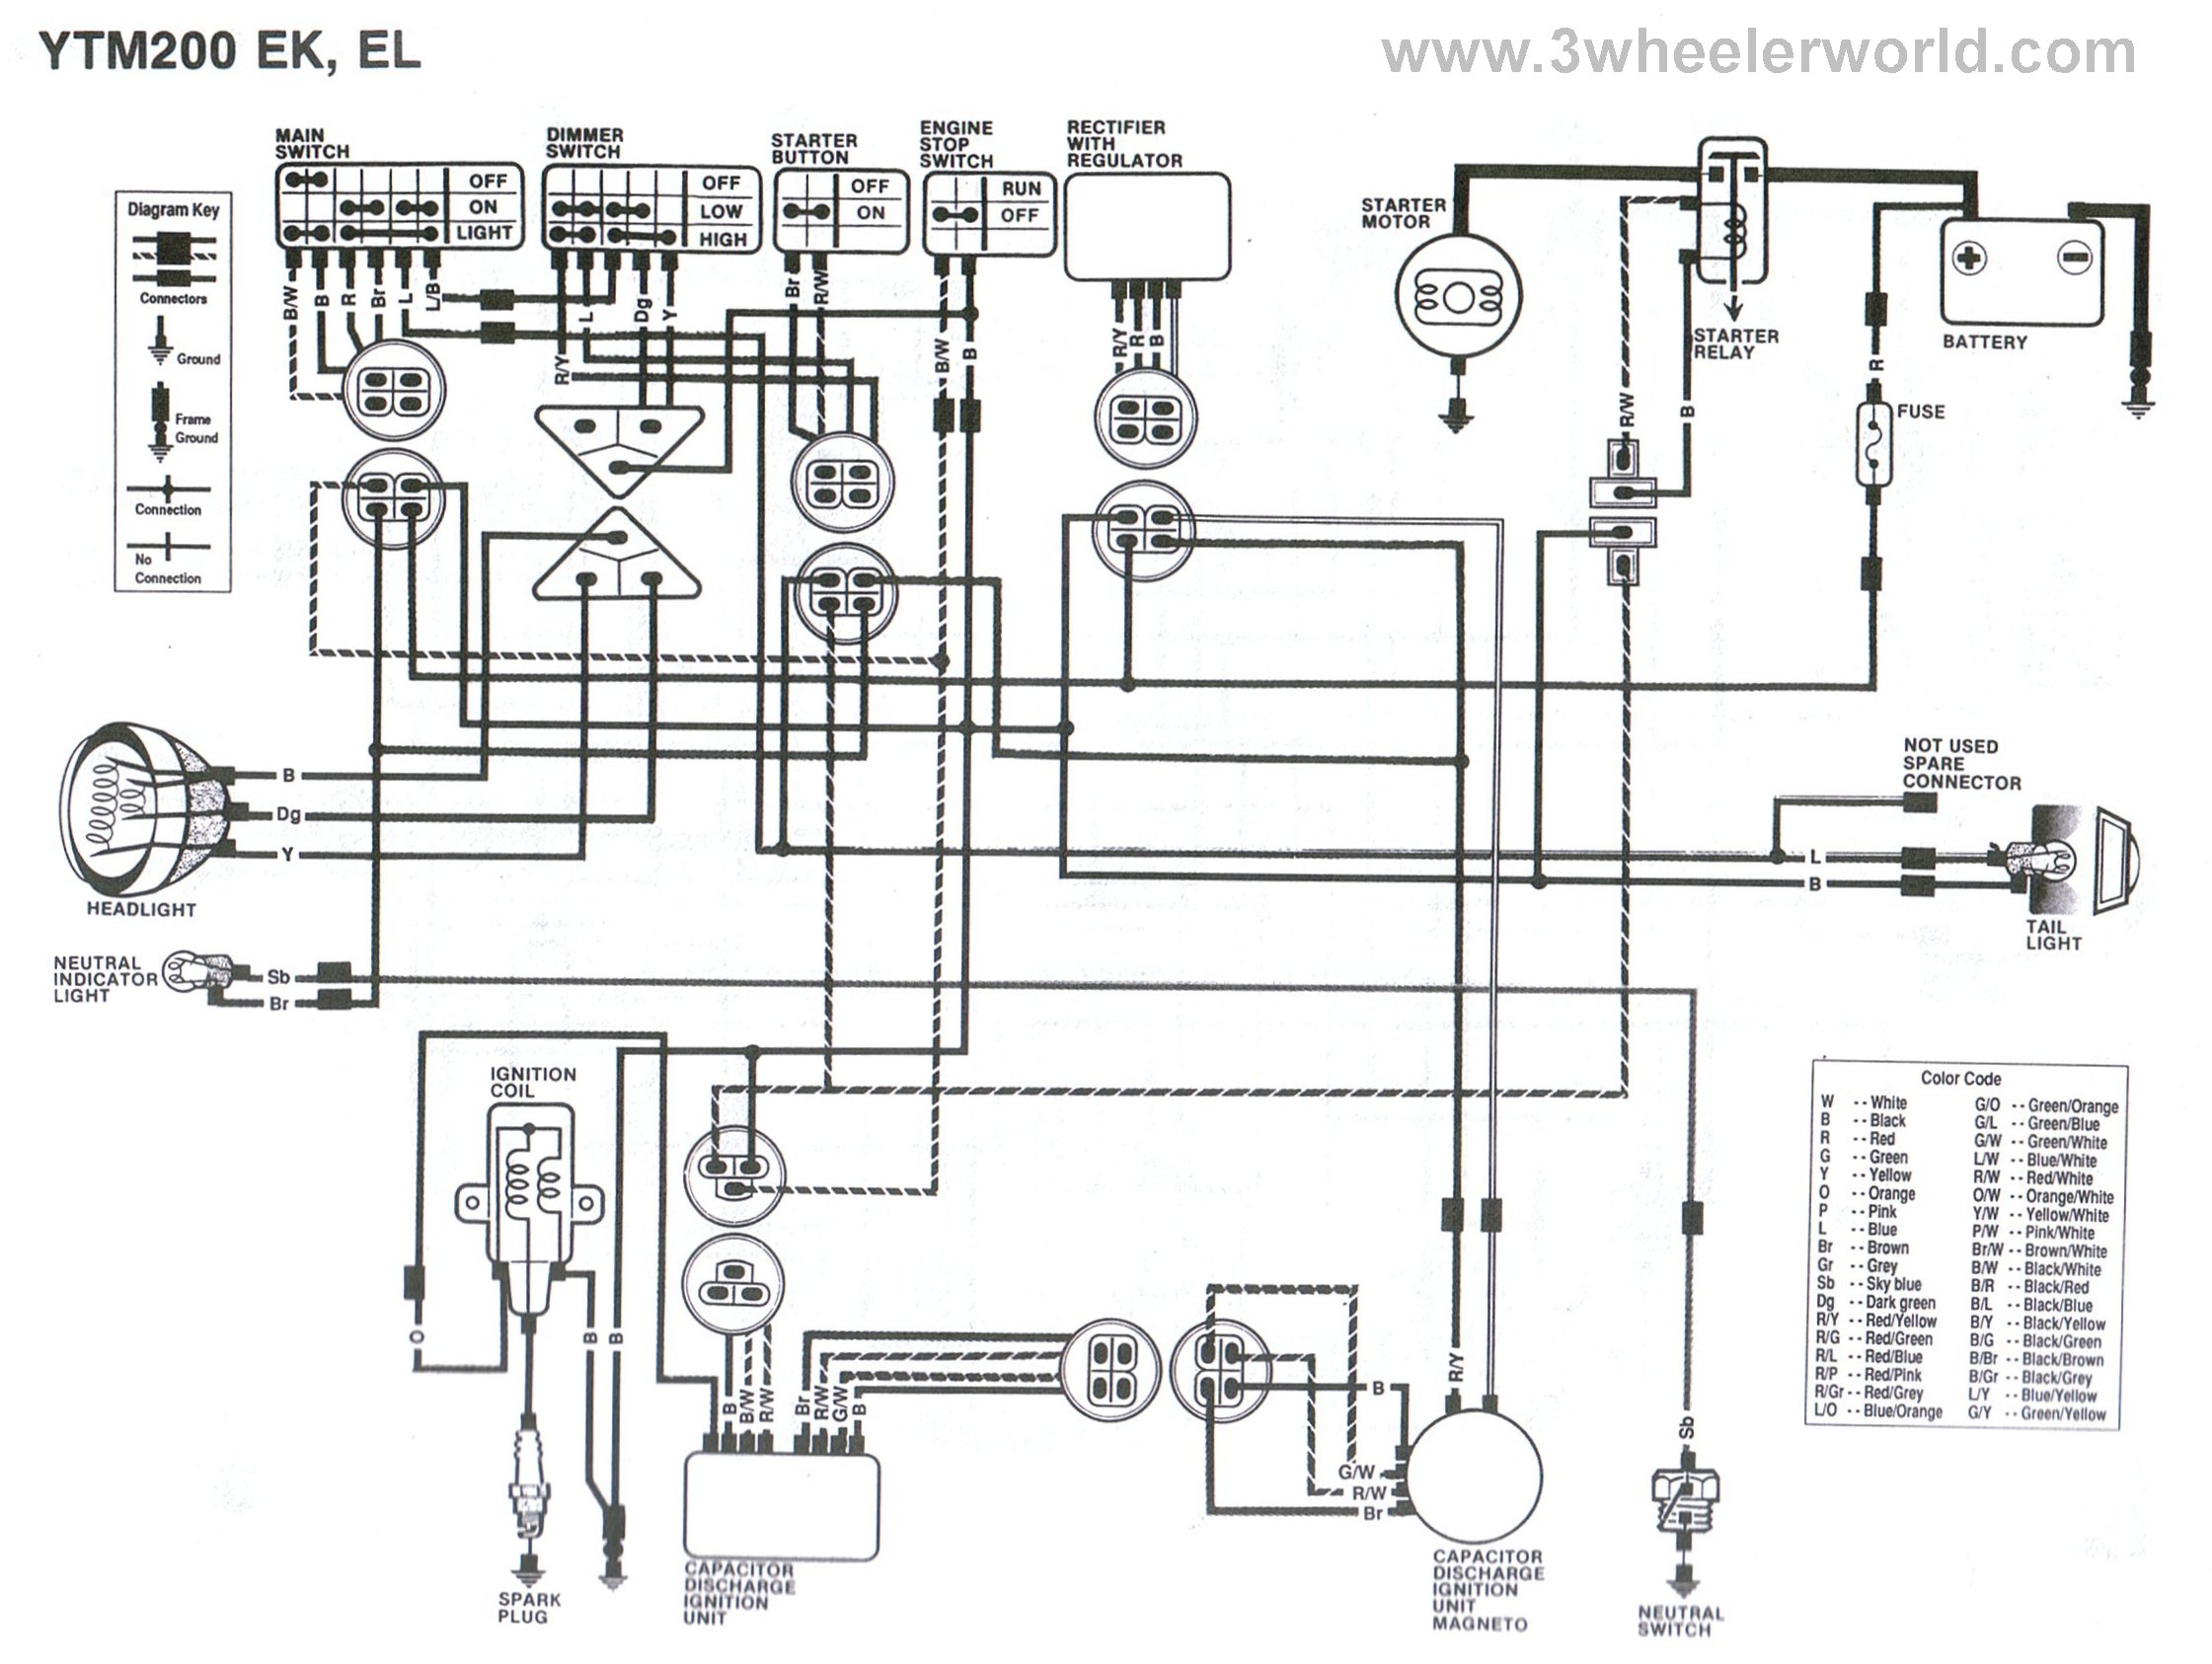 YTM200EKEL 1981 yamaha xt 250 wiring diagram 1981 yamaha xt250 carburetor  at readyjetset.co